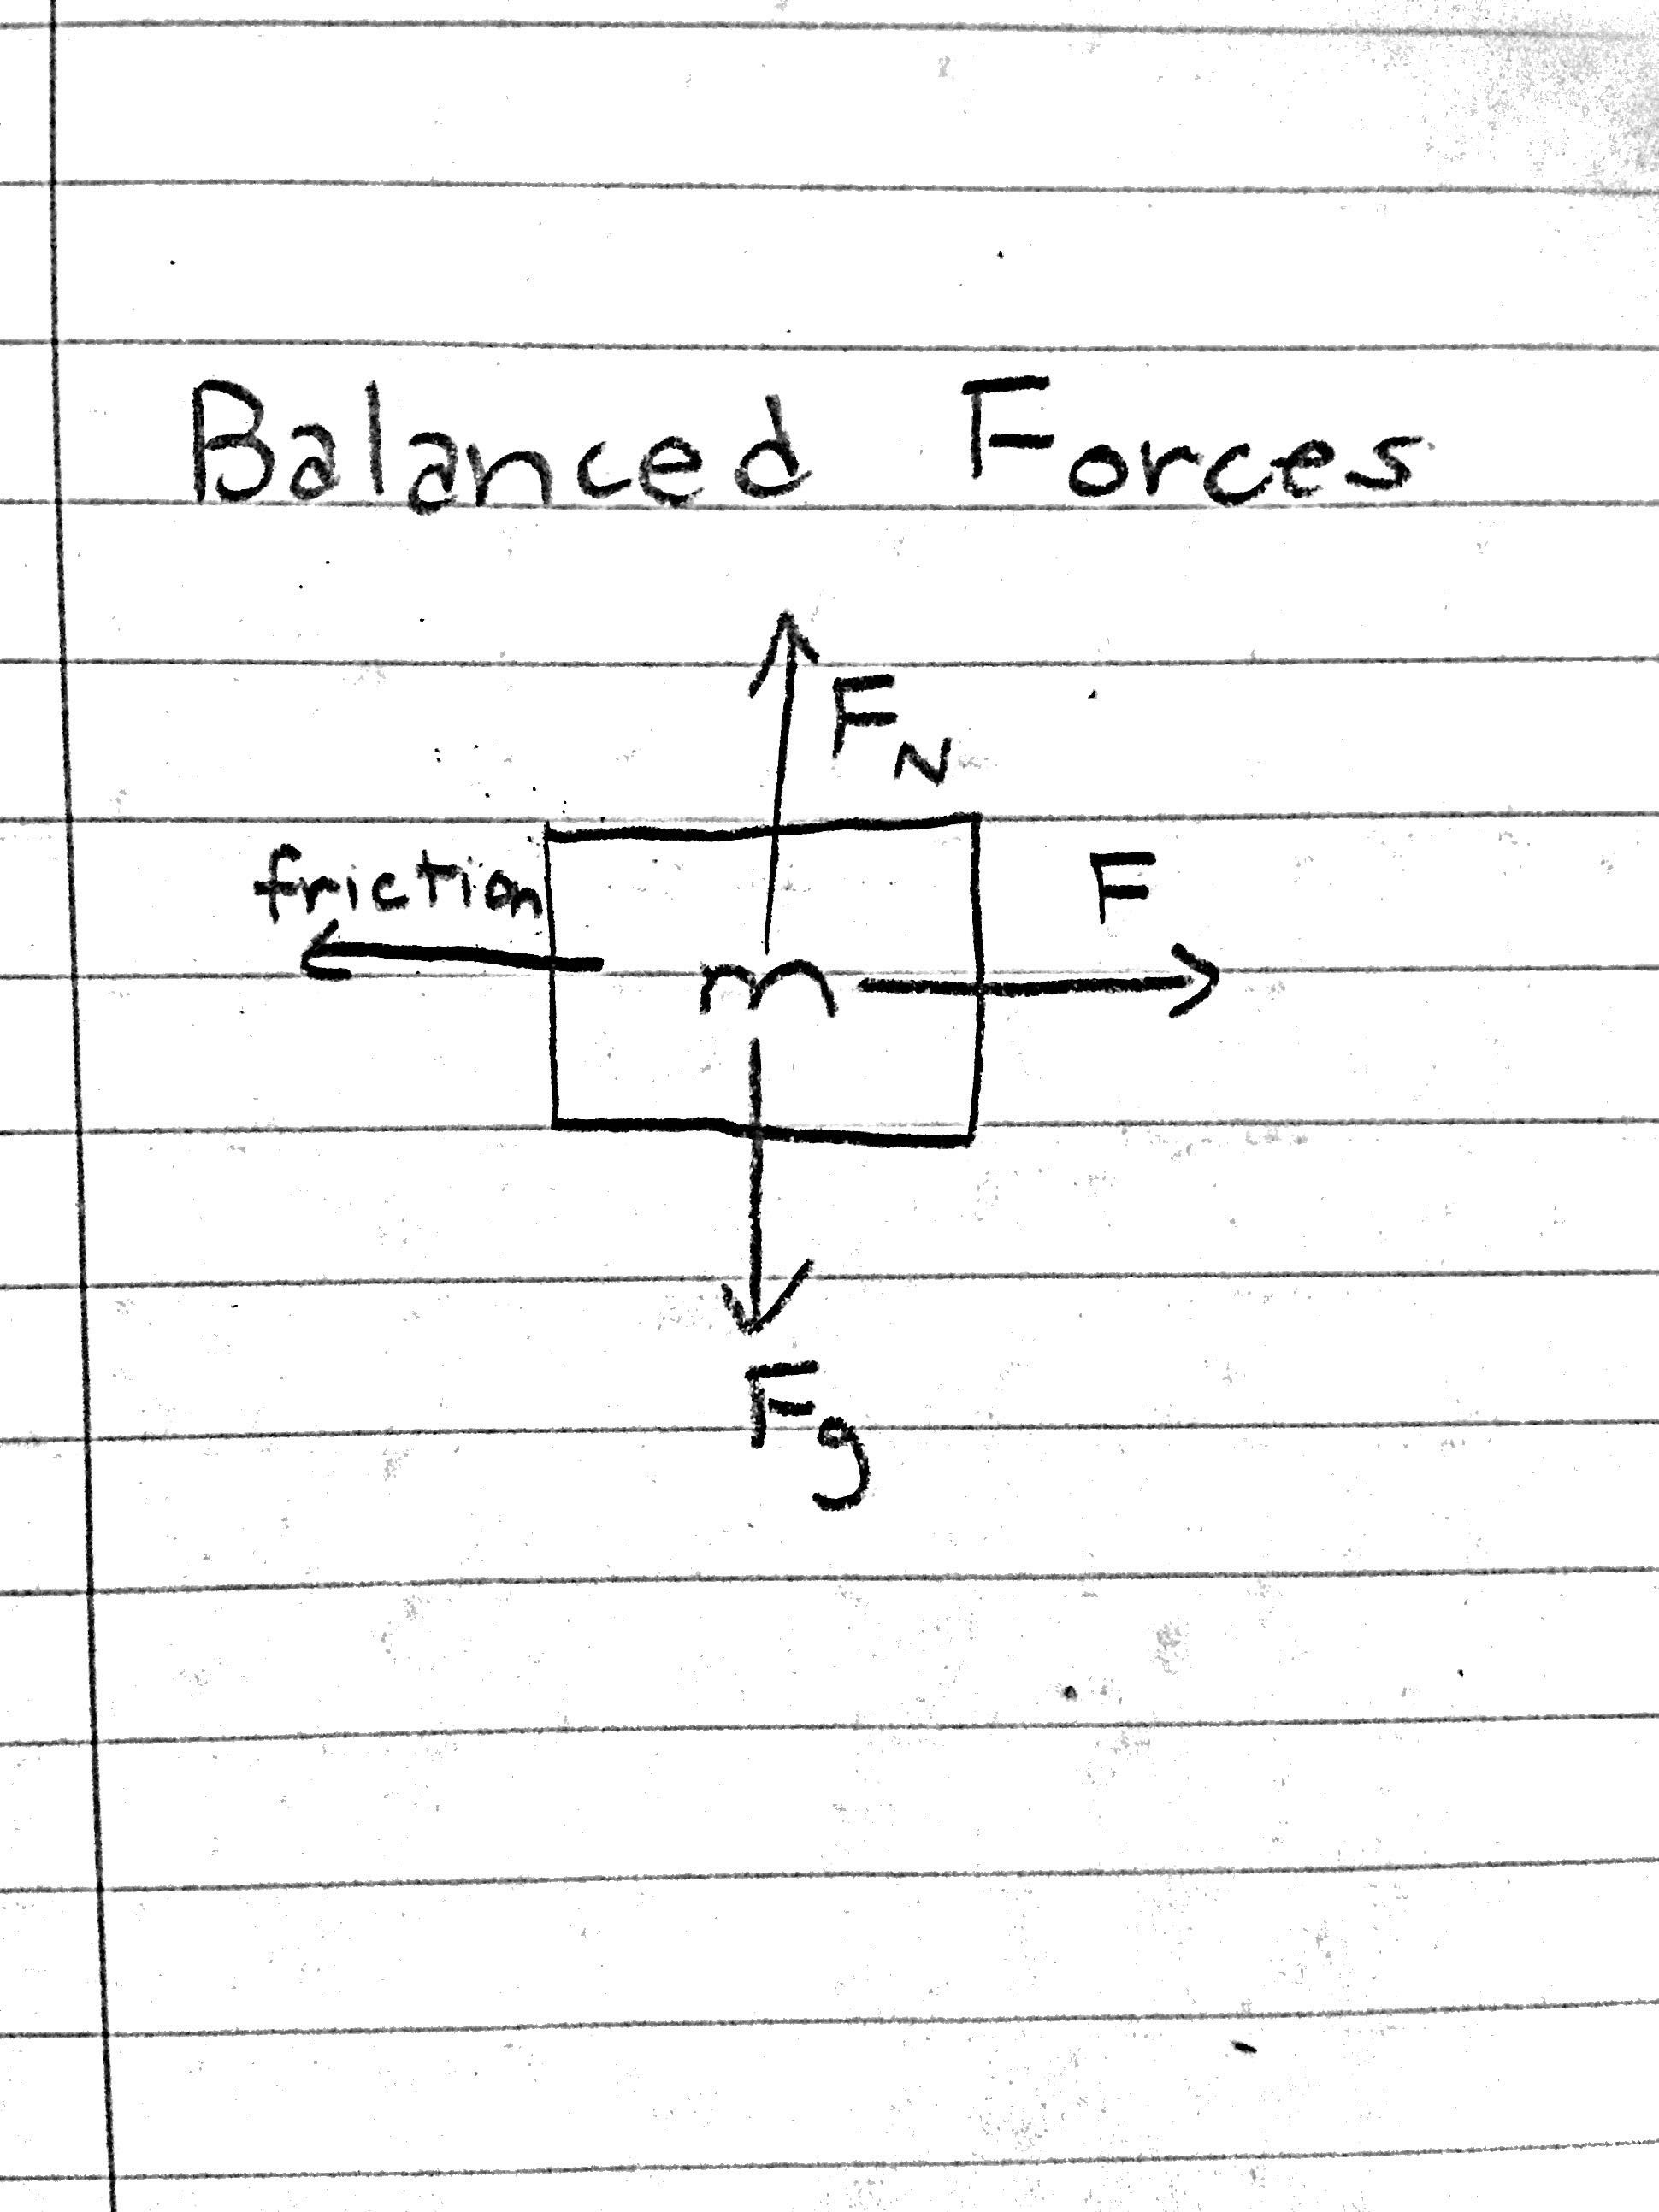 Unit 3: Forces - Taylor J Moon AP Physics 1 Portfolio